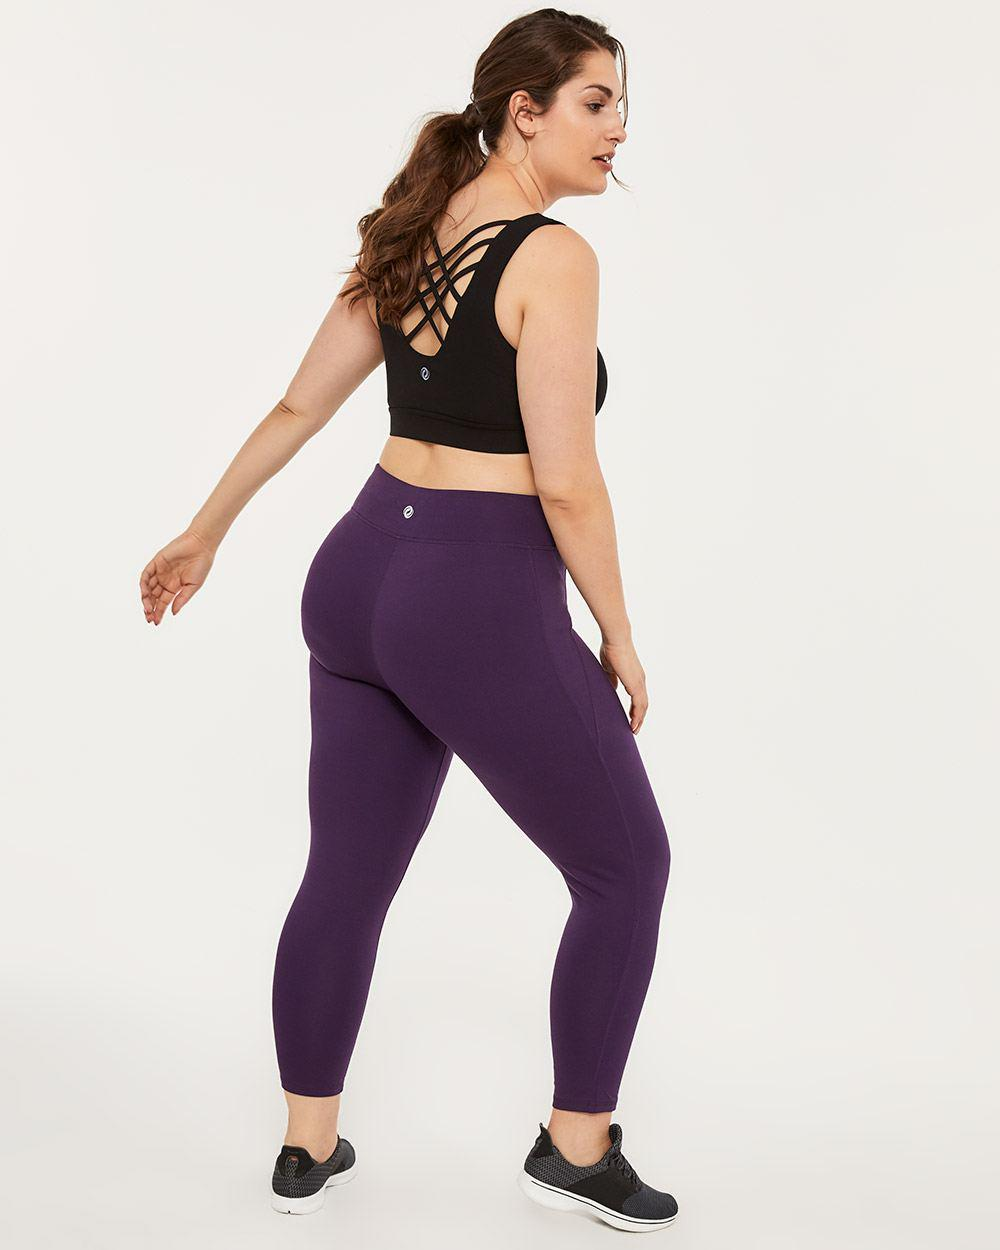 4fab8d1f1a3ca4 Lyst - Addition Elle Plus-size Basic 7/8 Legging - Activezone in Purple